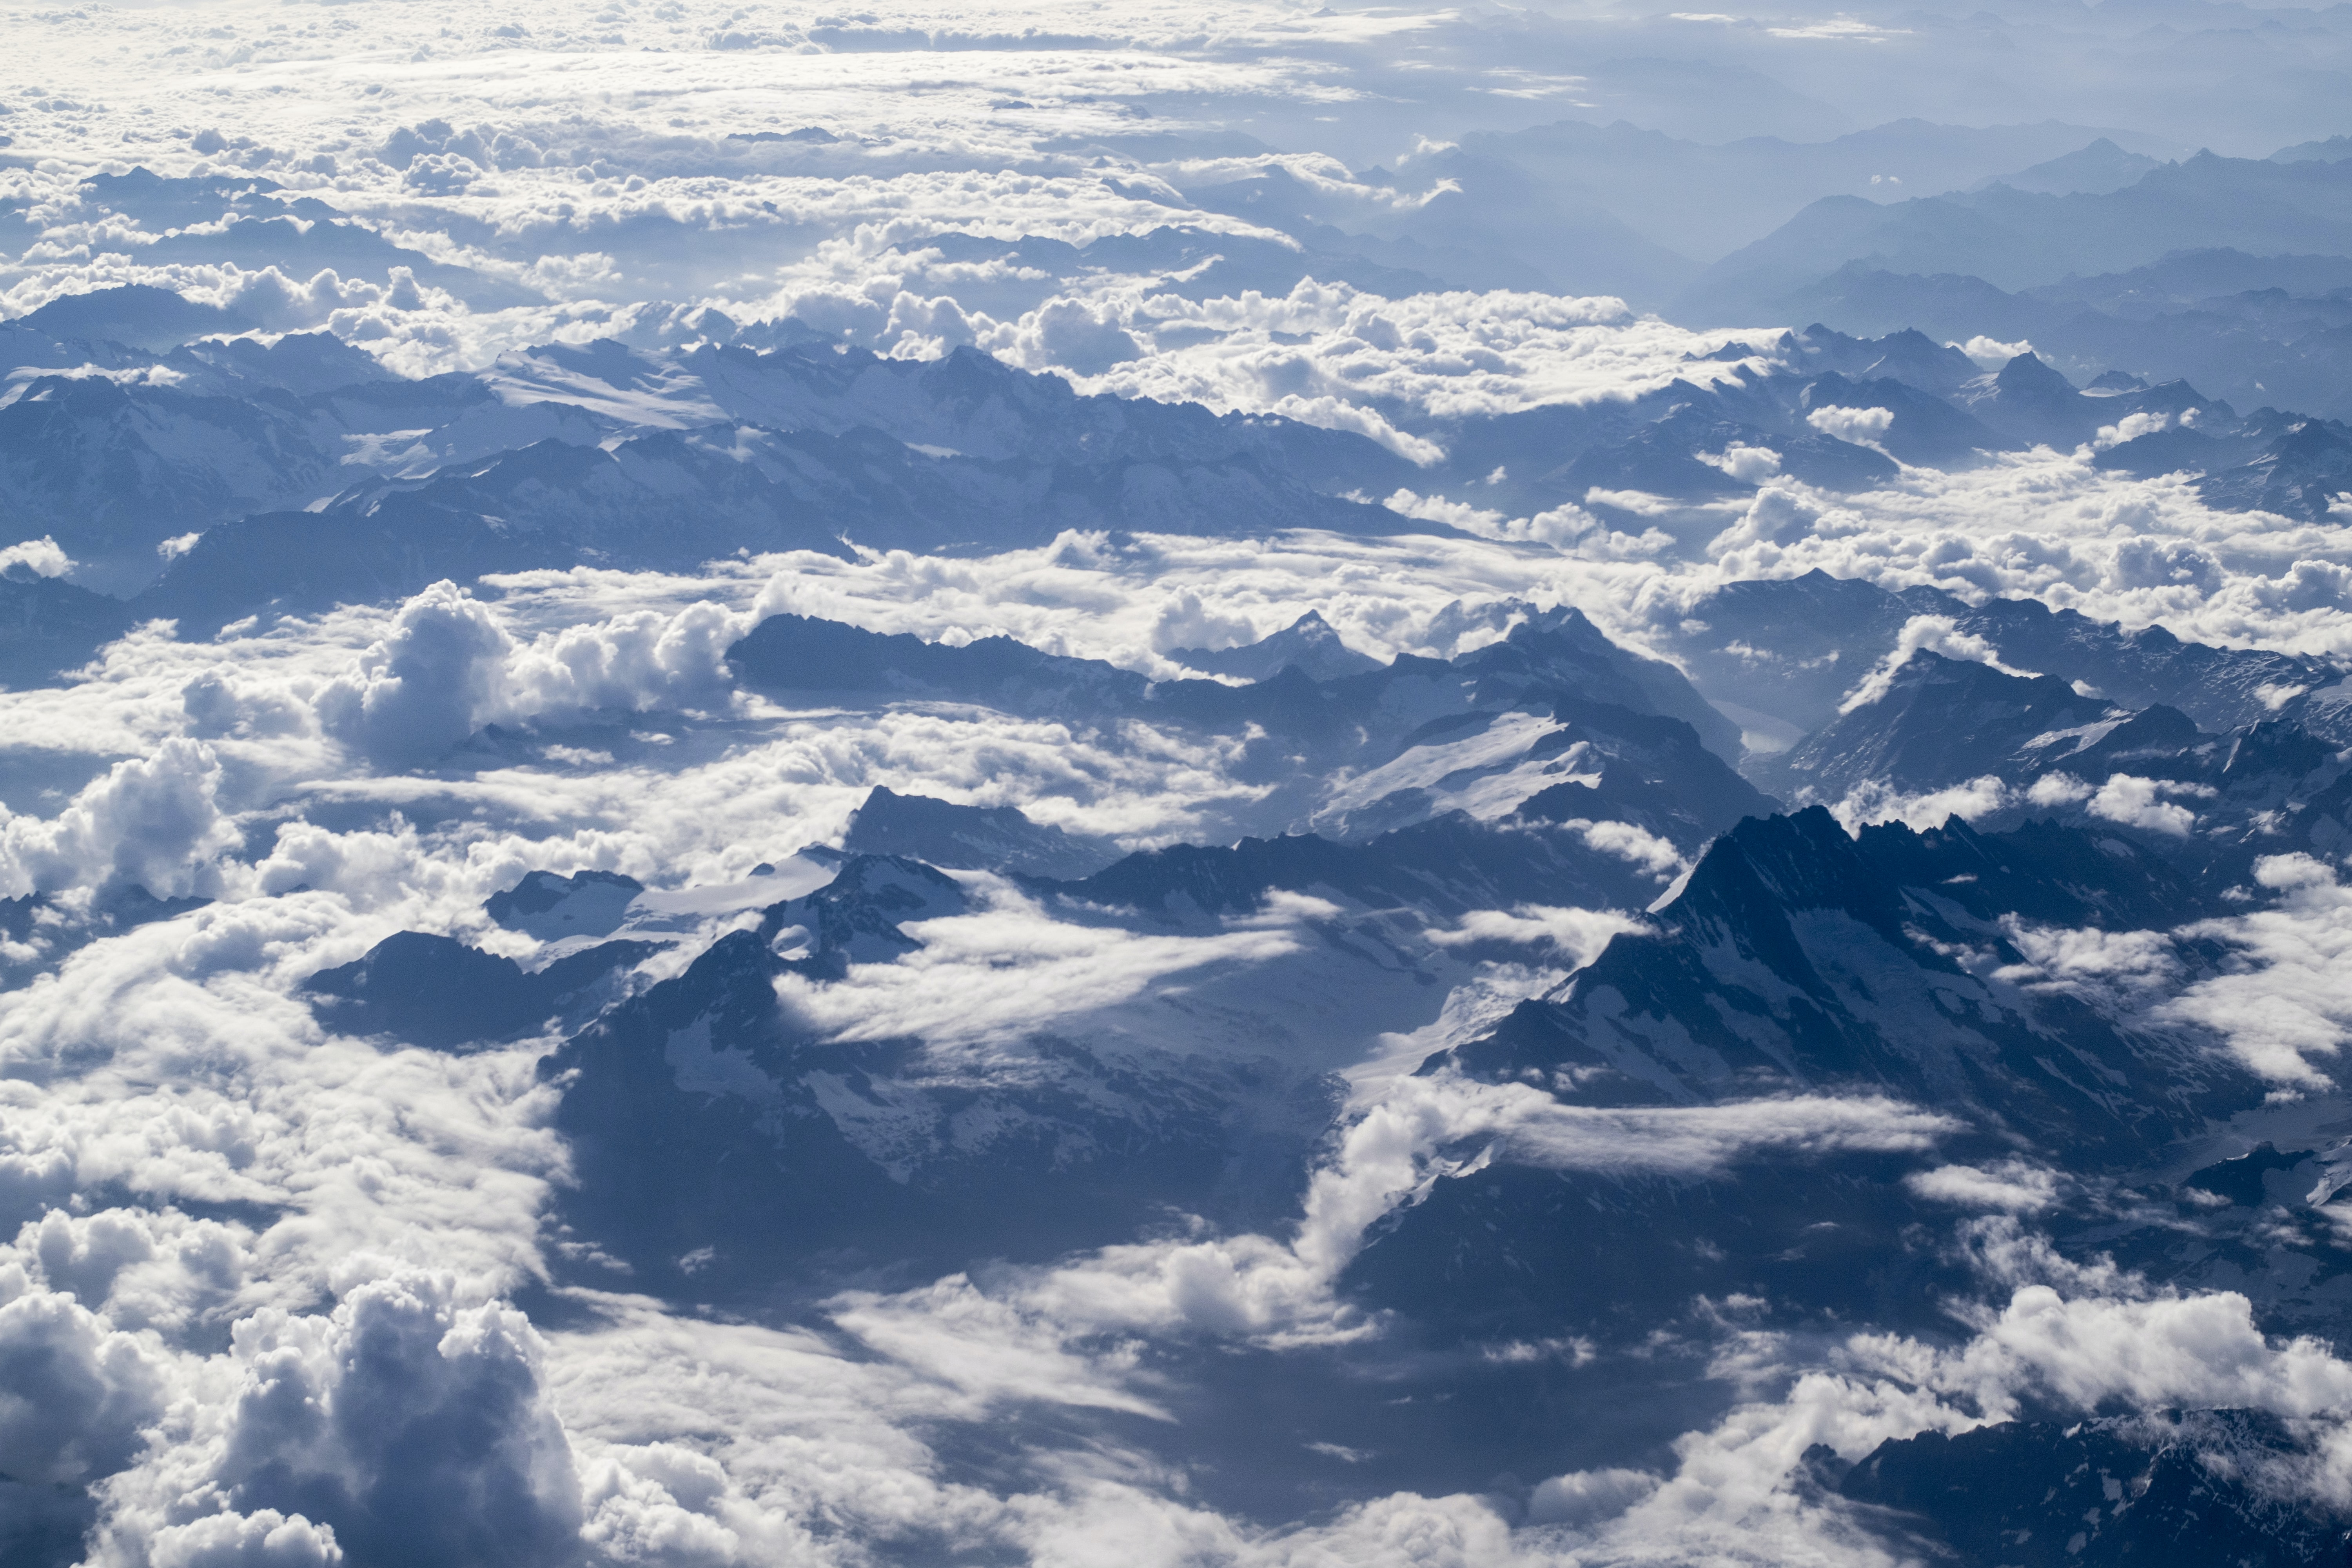 An aerial shot of sharp mountain ridges emerging from a sea of clouds